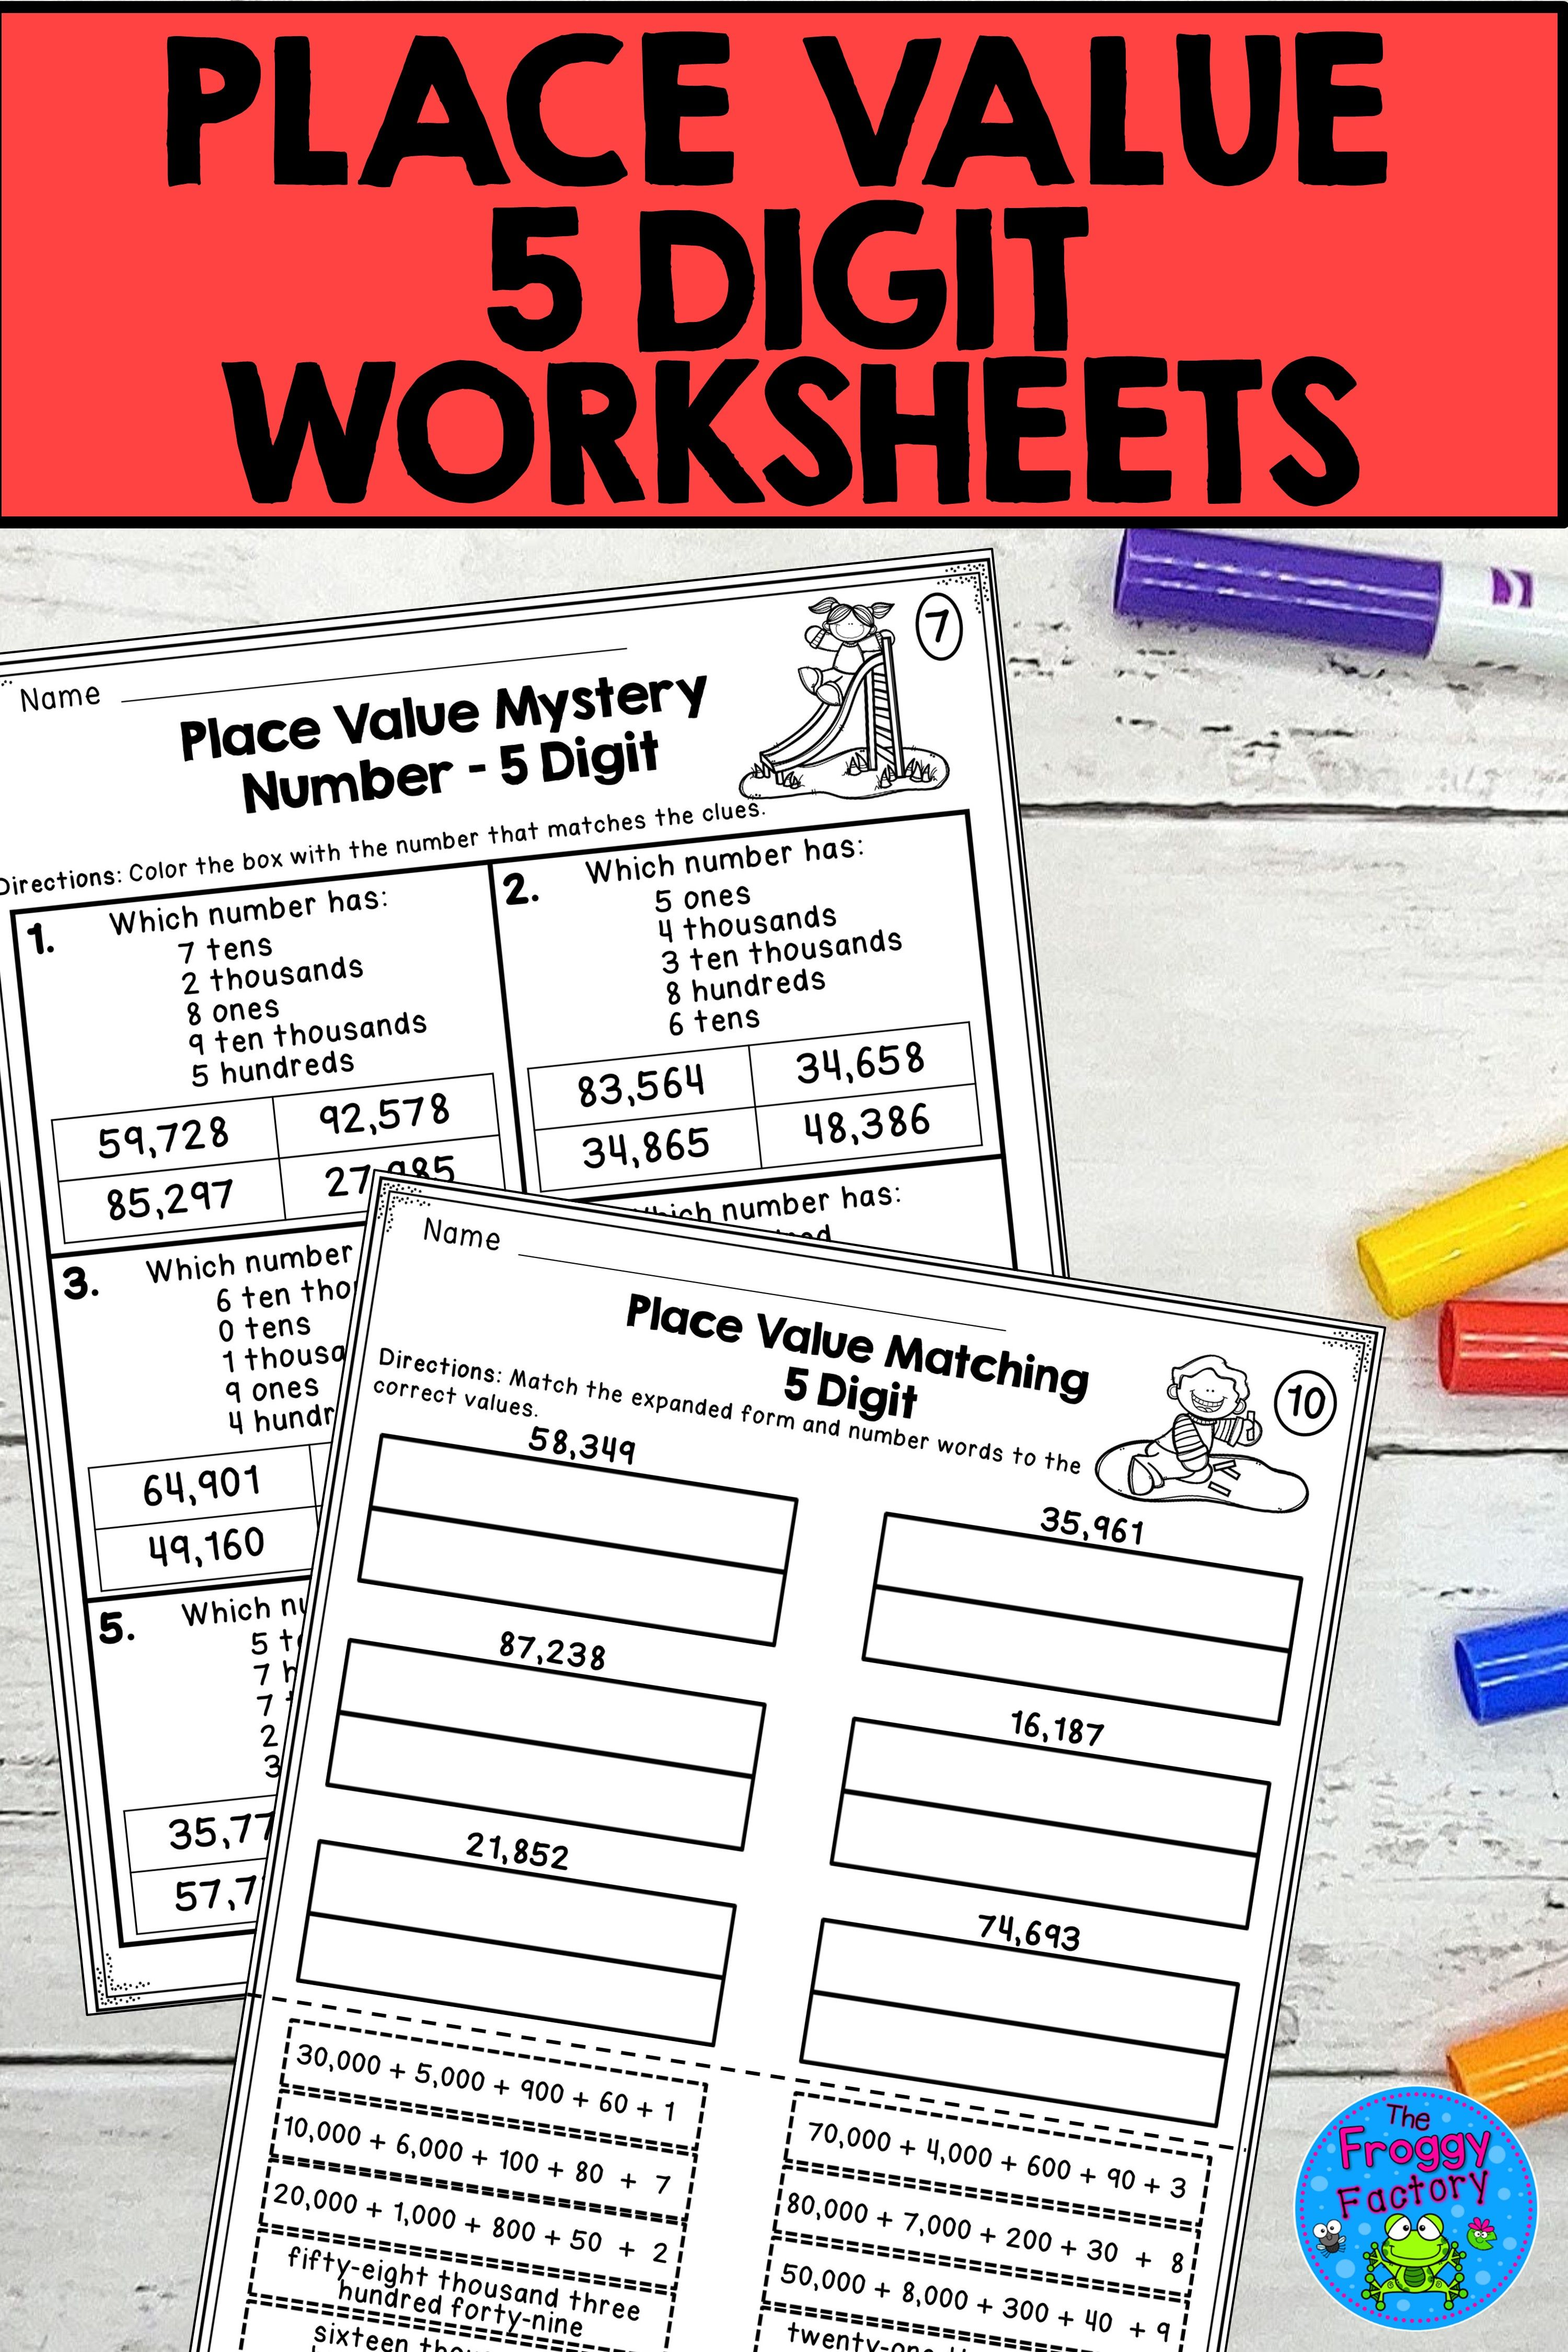 small resolution of Place Value 5 Digit Worksheets   Place value worksheets